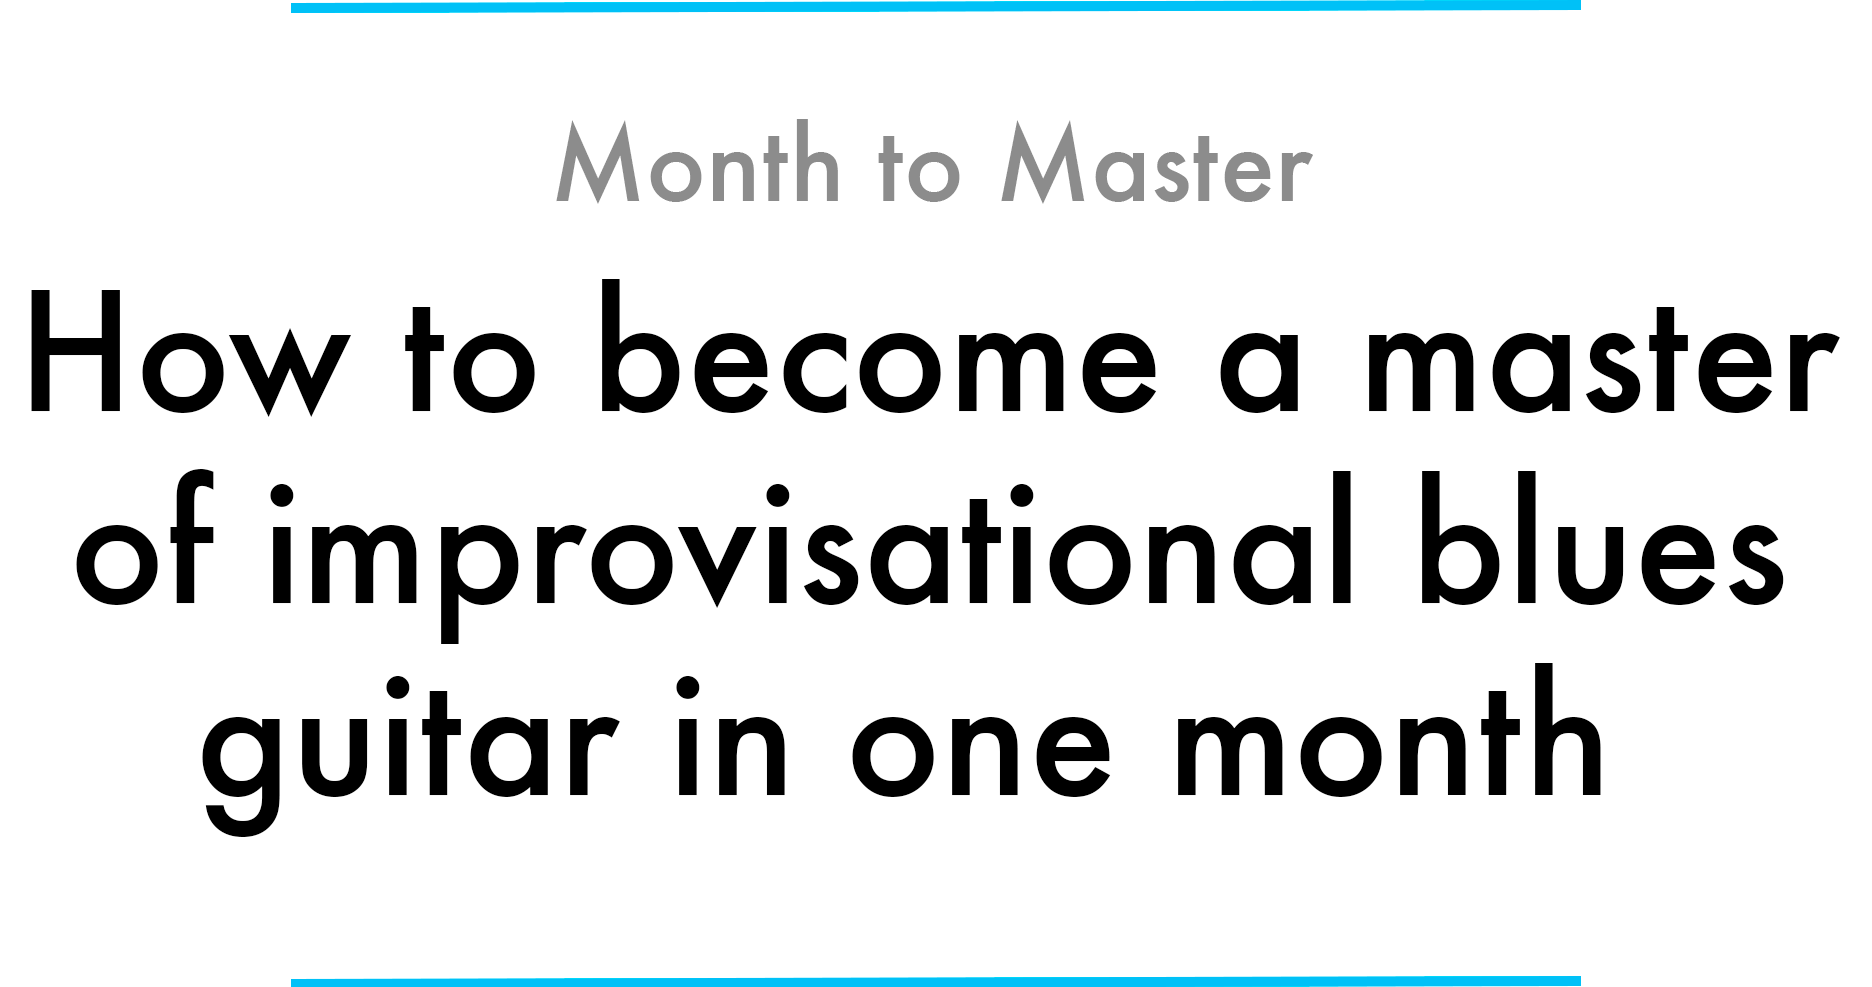 how to become a master of improvisational blues guitar in one monthGuitar Lesson World Guitar Anatomy #21